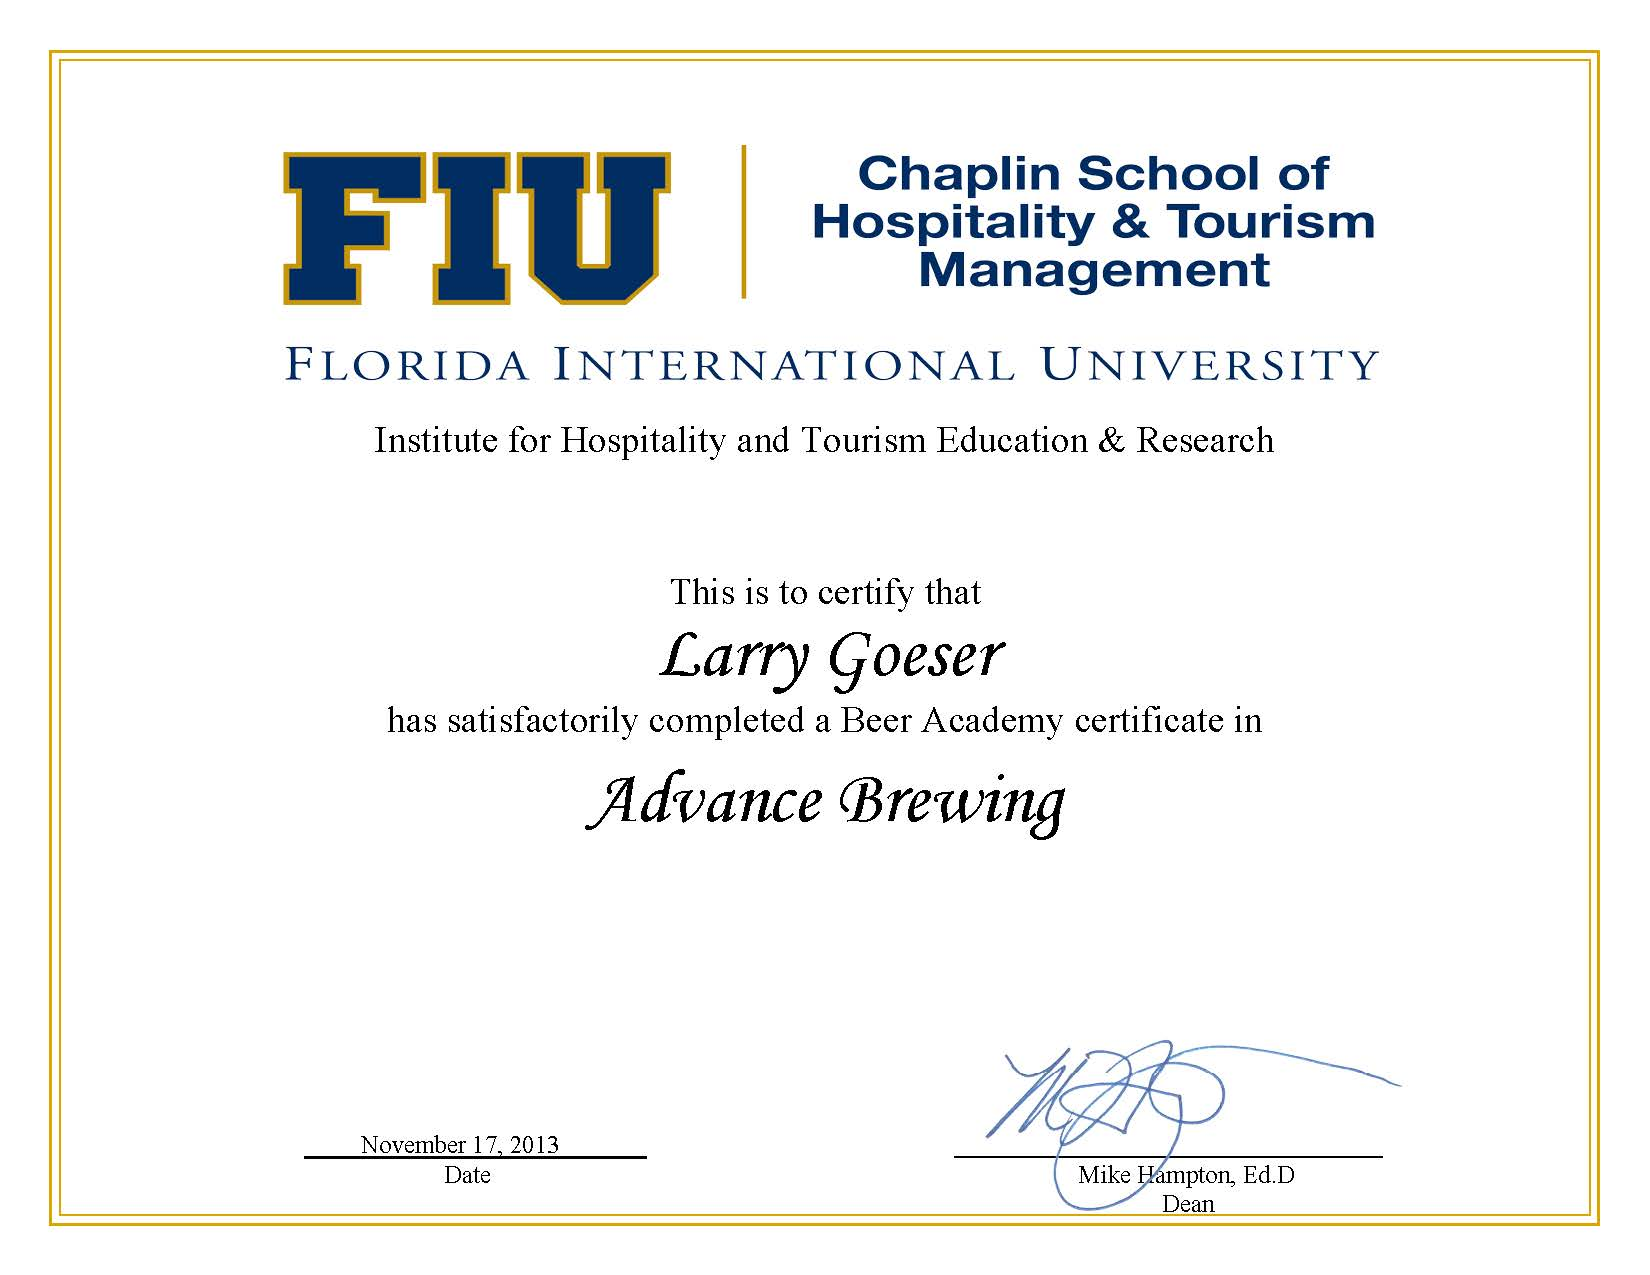 Craft beer promotion craft beer events tastings and festivals i received a certificate and will pursue more brewing opportunities i got some hands on brewing experience and learned that home brewers are resourceful xflitez Image collections